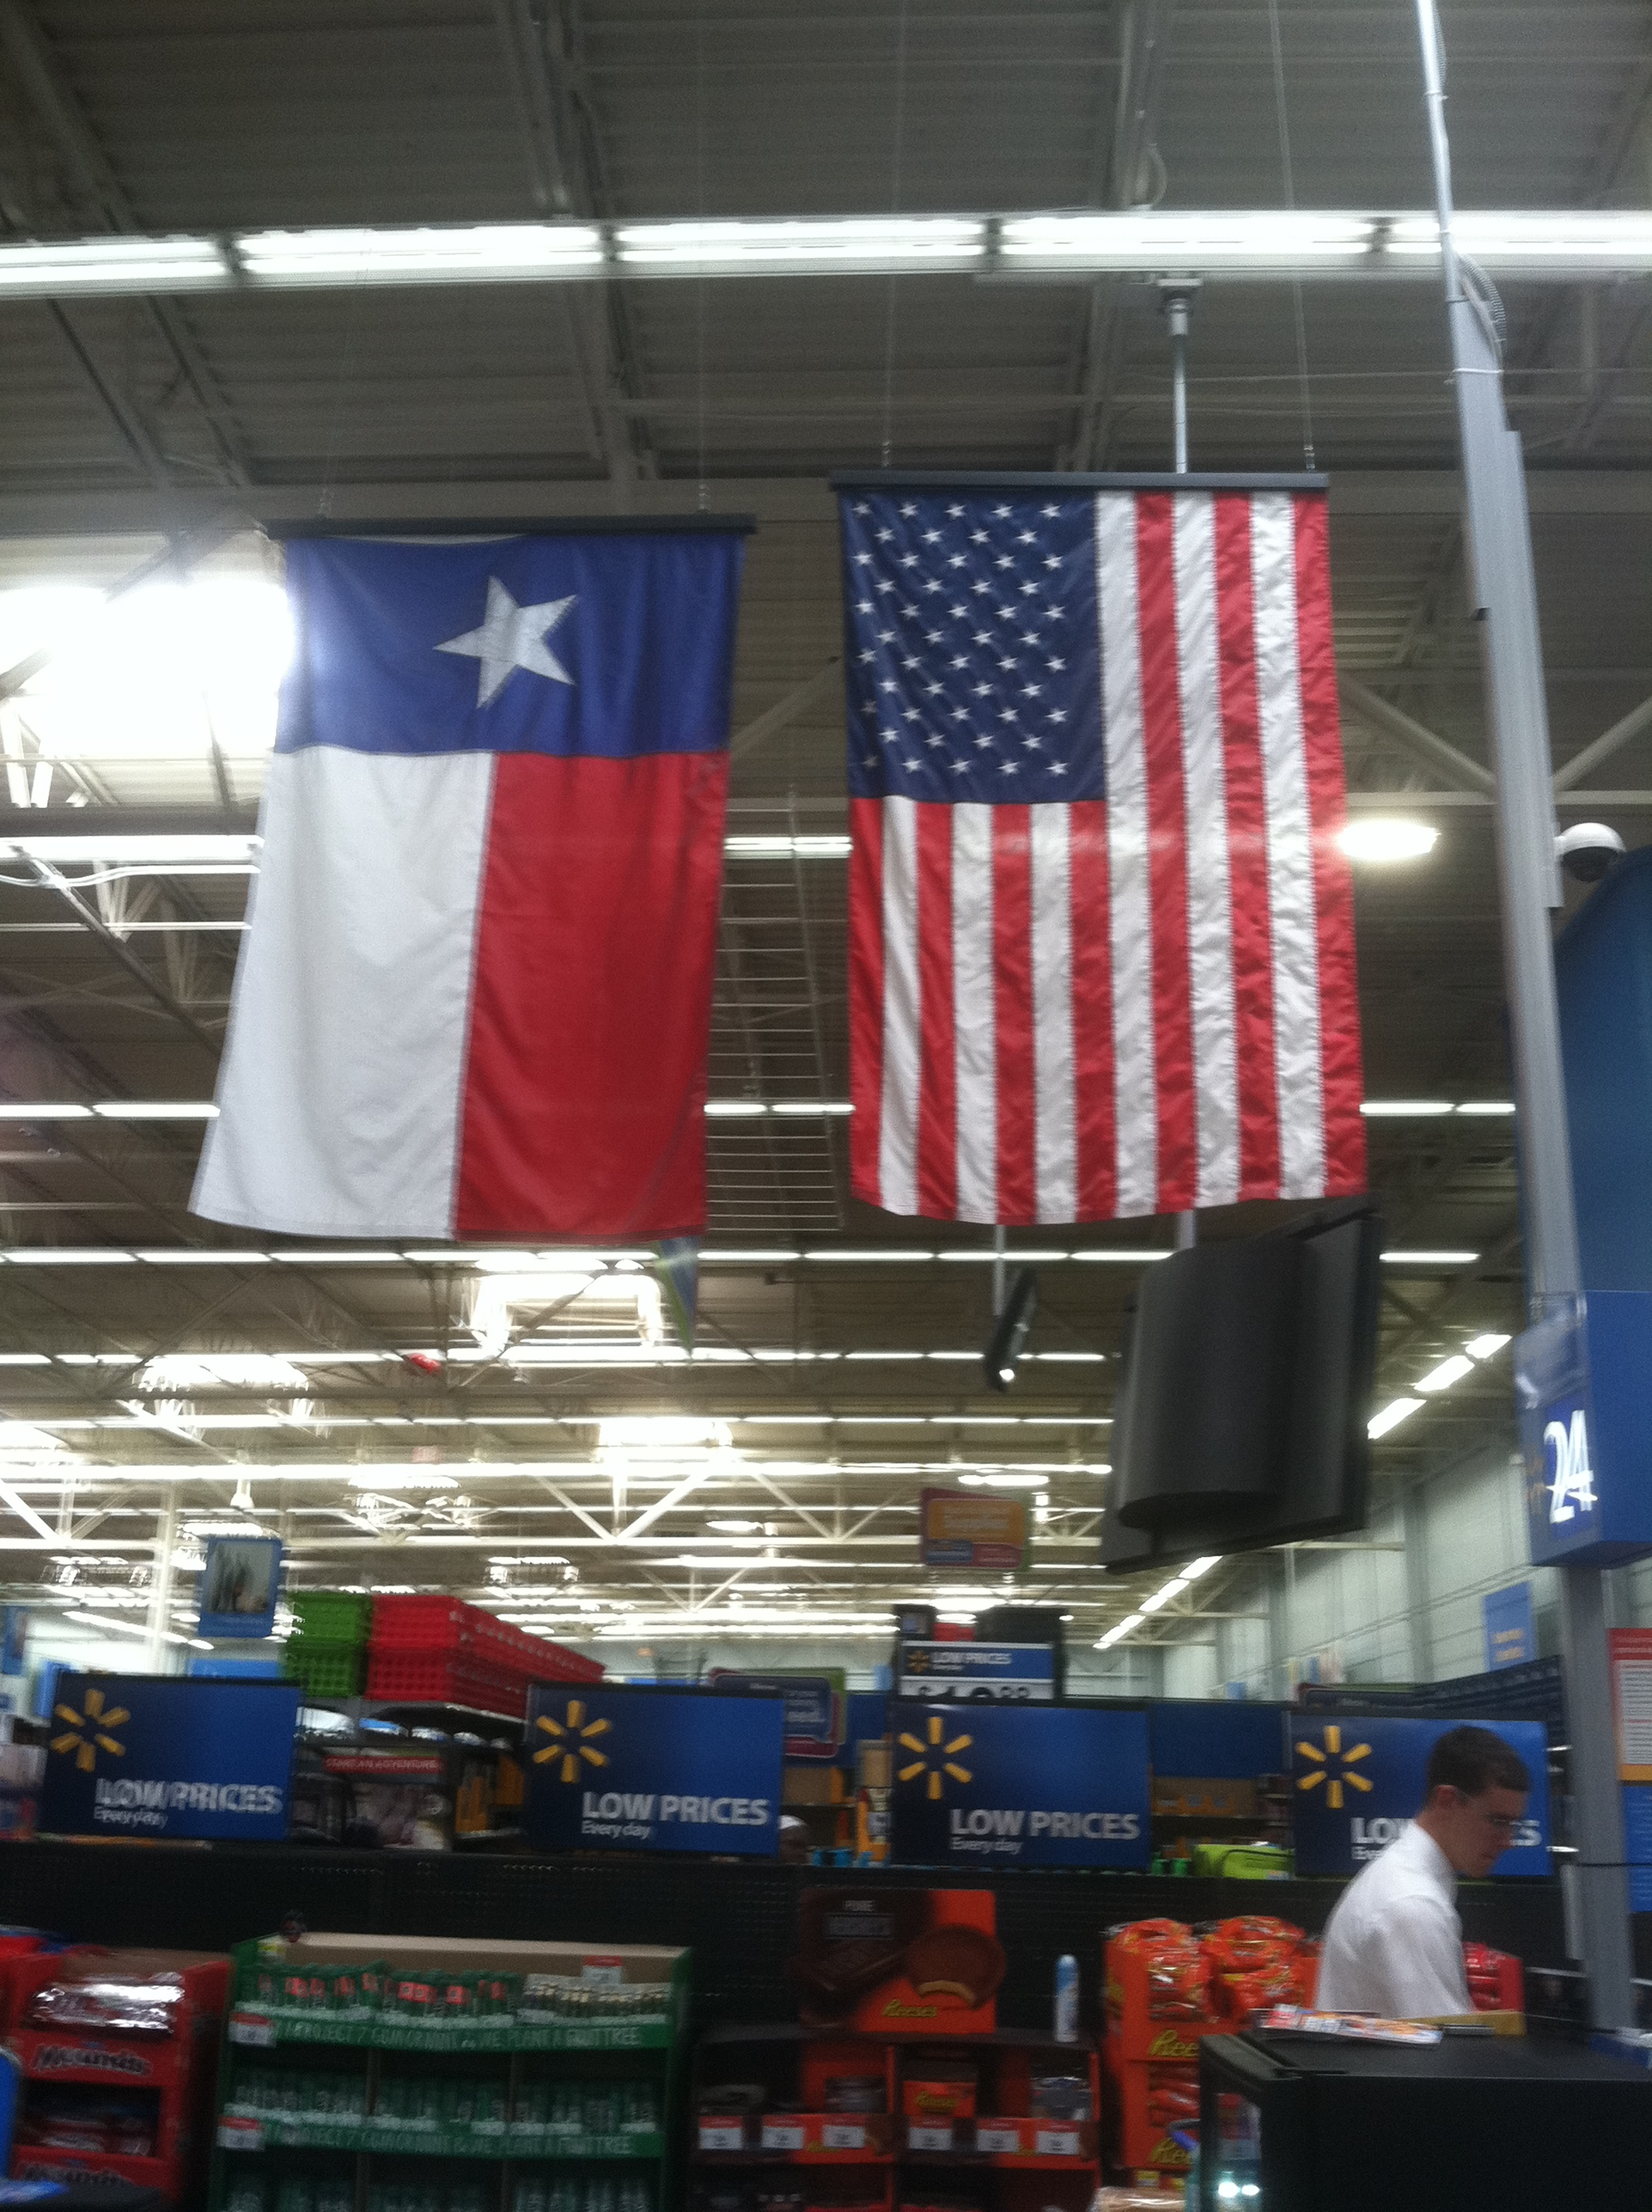 Flag Etiquette Cowboys Wal Mart Fail On Flag Flying